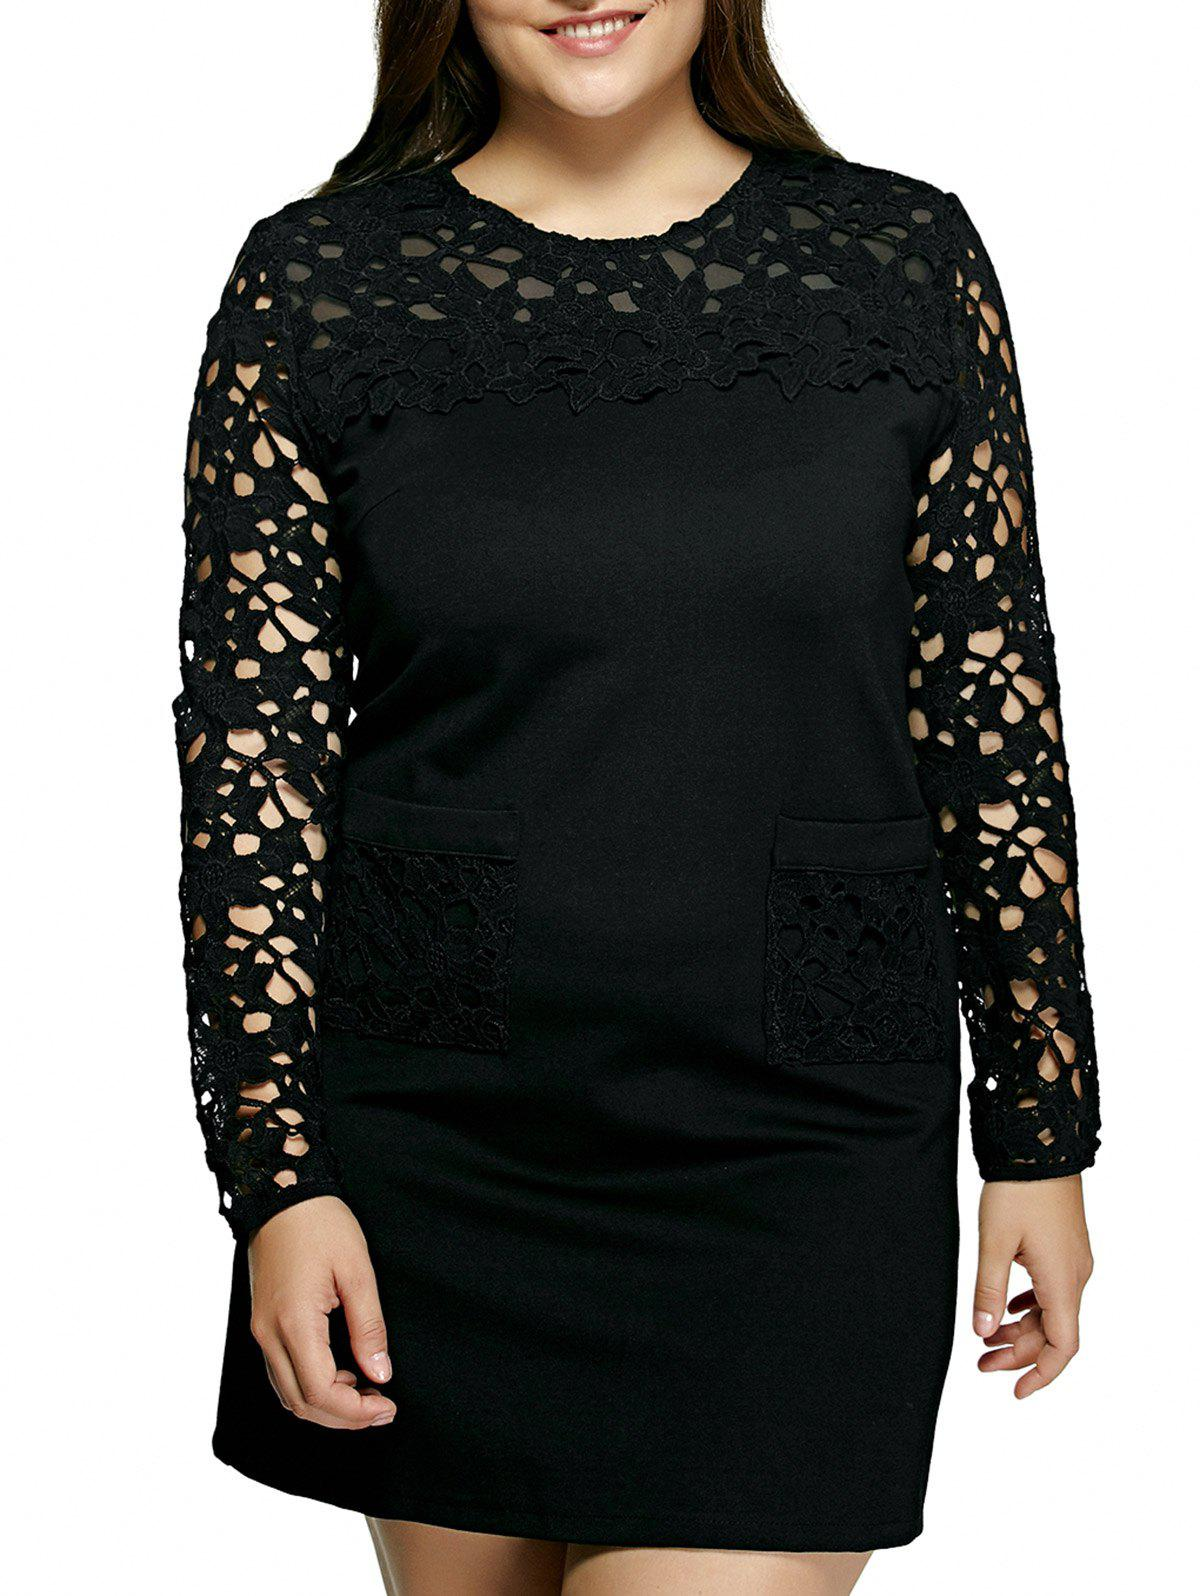 Oversized Crochet Spliced Hollow Out Dress - 5XL BLACK